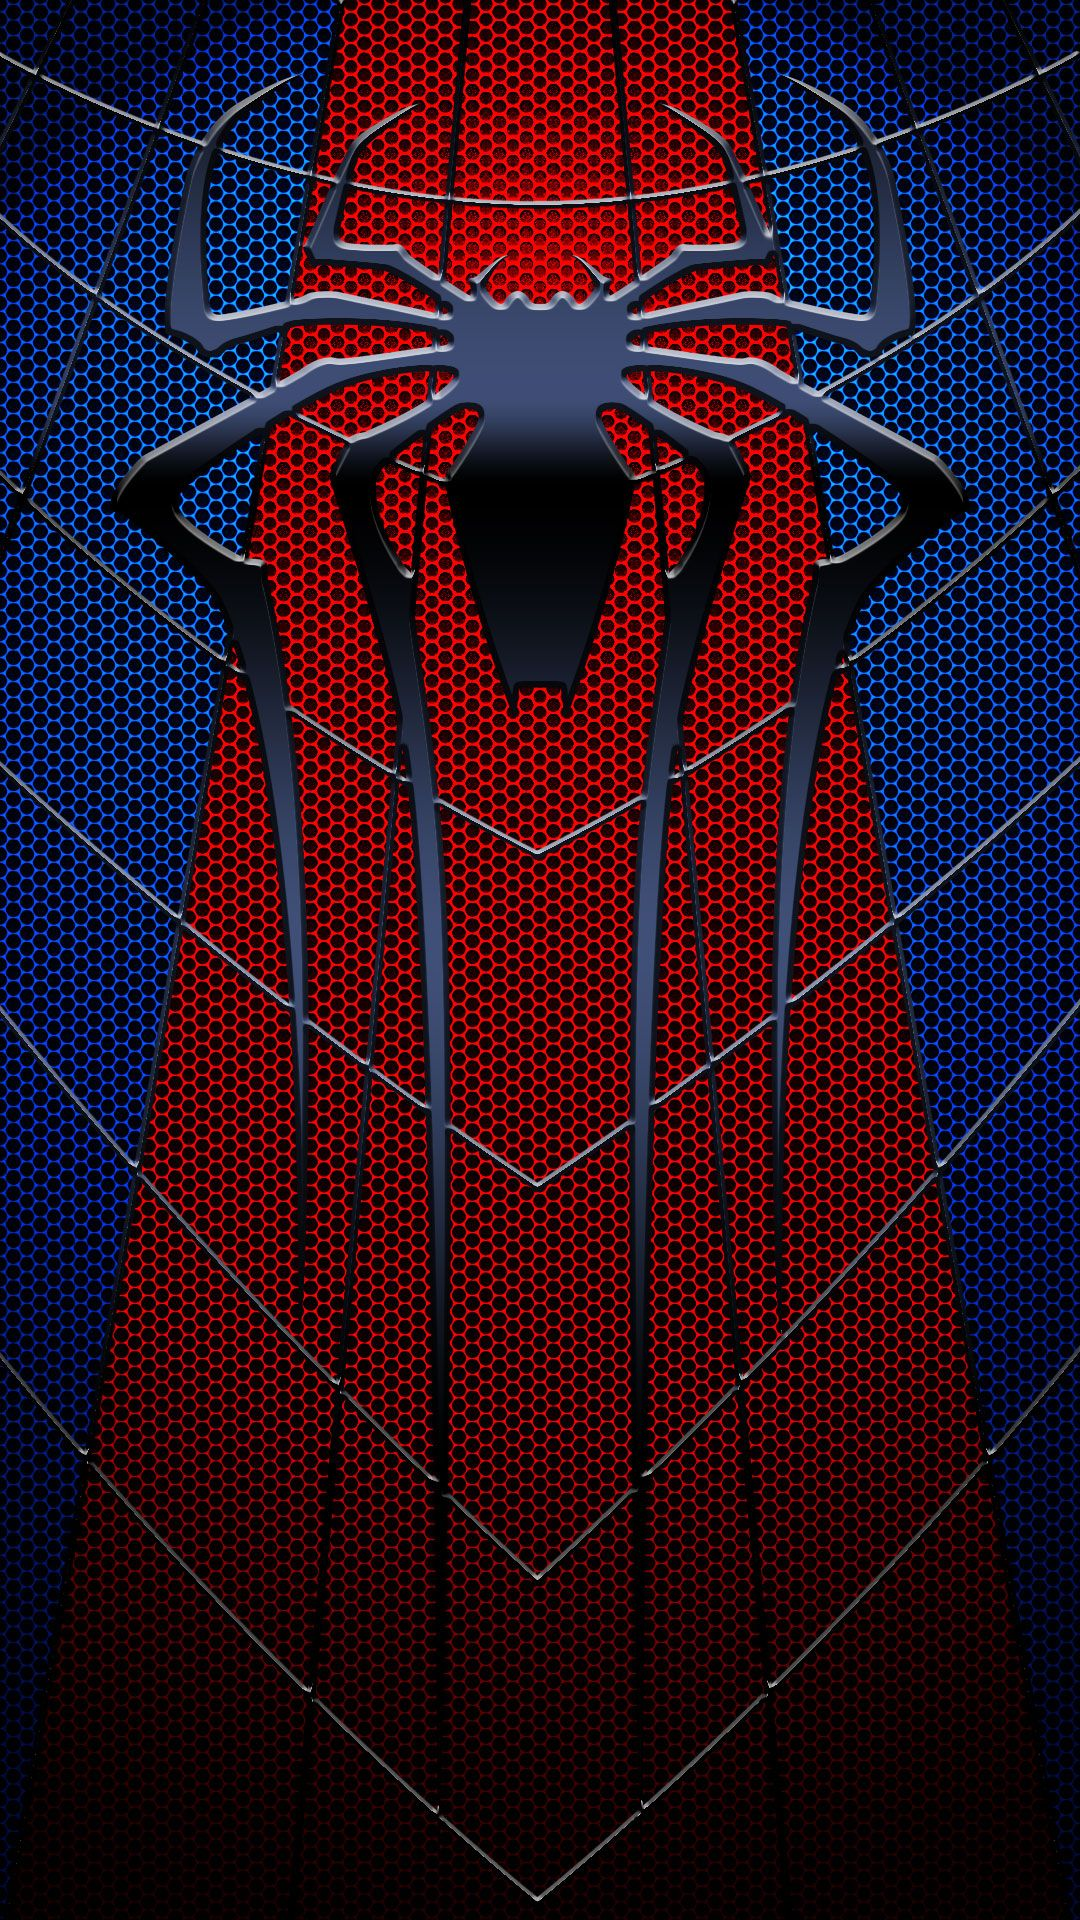 Nn 3d Wallpaper Spuderman Logo Hd Image Collections Wallpaper And Free